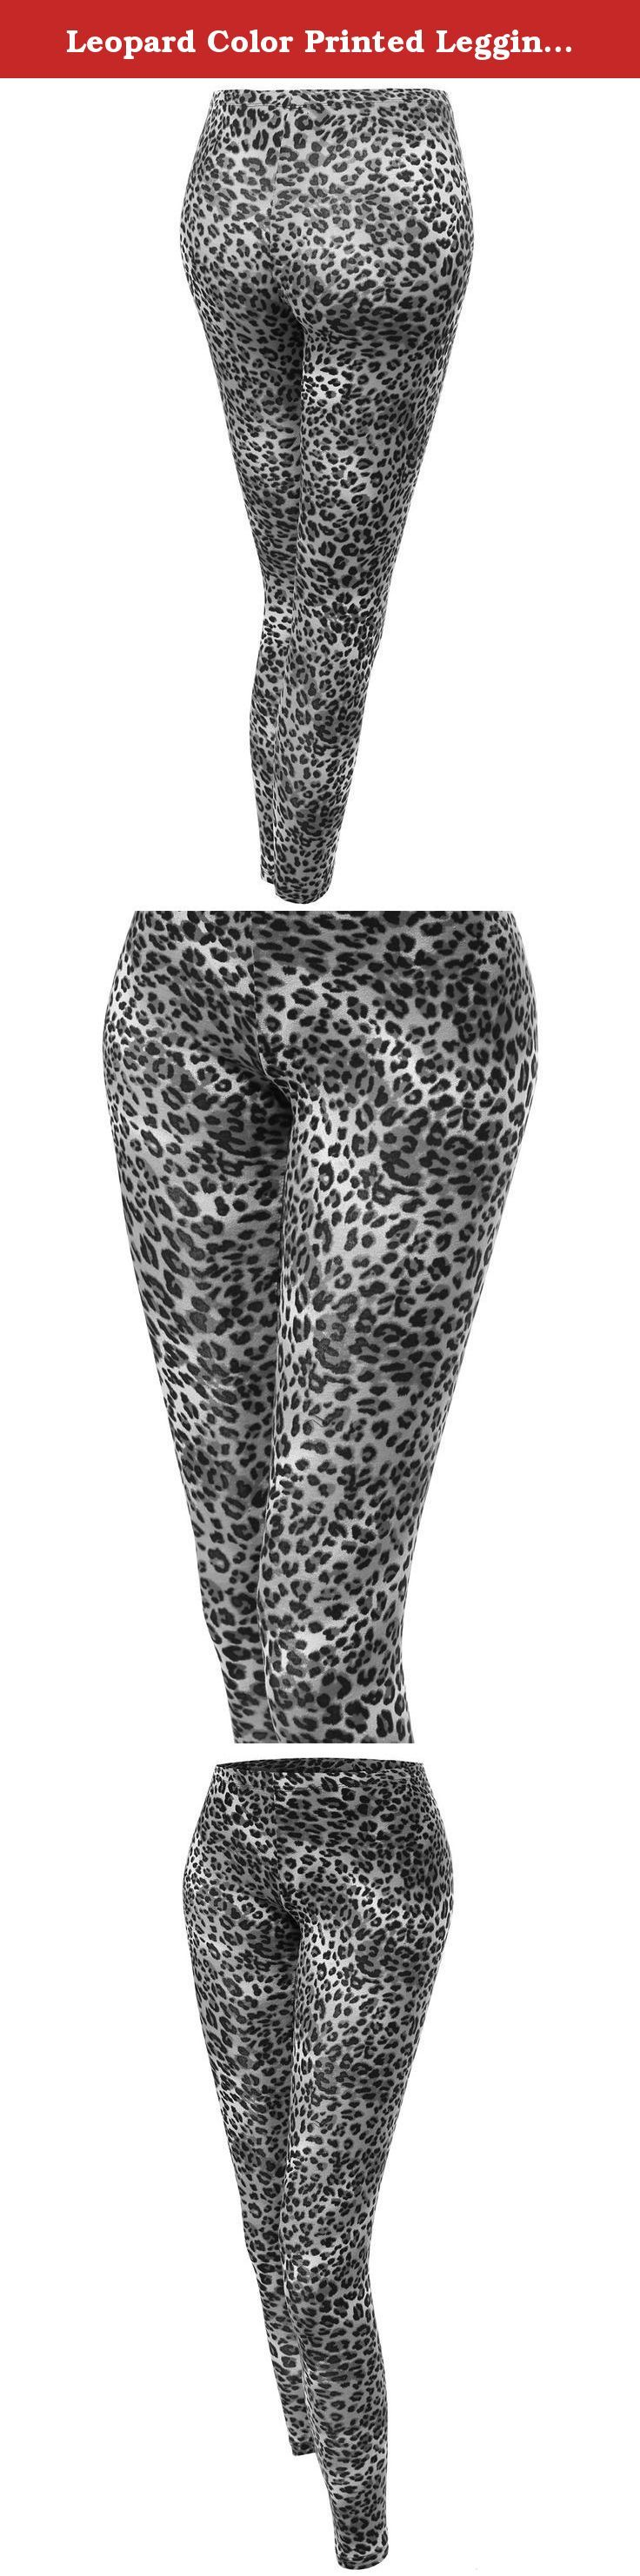 Leopard Color Printed Leggings Gray Size L. Awesome21 is a company which carries professionally in womenswear. We specialize in basic to trendy items which will interest all the ladies and women looking for casual or stylish and unique clothes with quality fabric. If you are a leggings lover, you should own this. There are lots of must have patterns and prints for leggings and this is the very basic and one of the prints you should own. Animal prints are always displayed everywhere and…